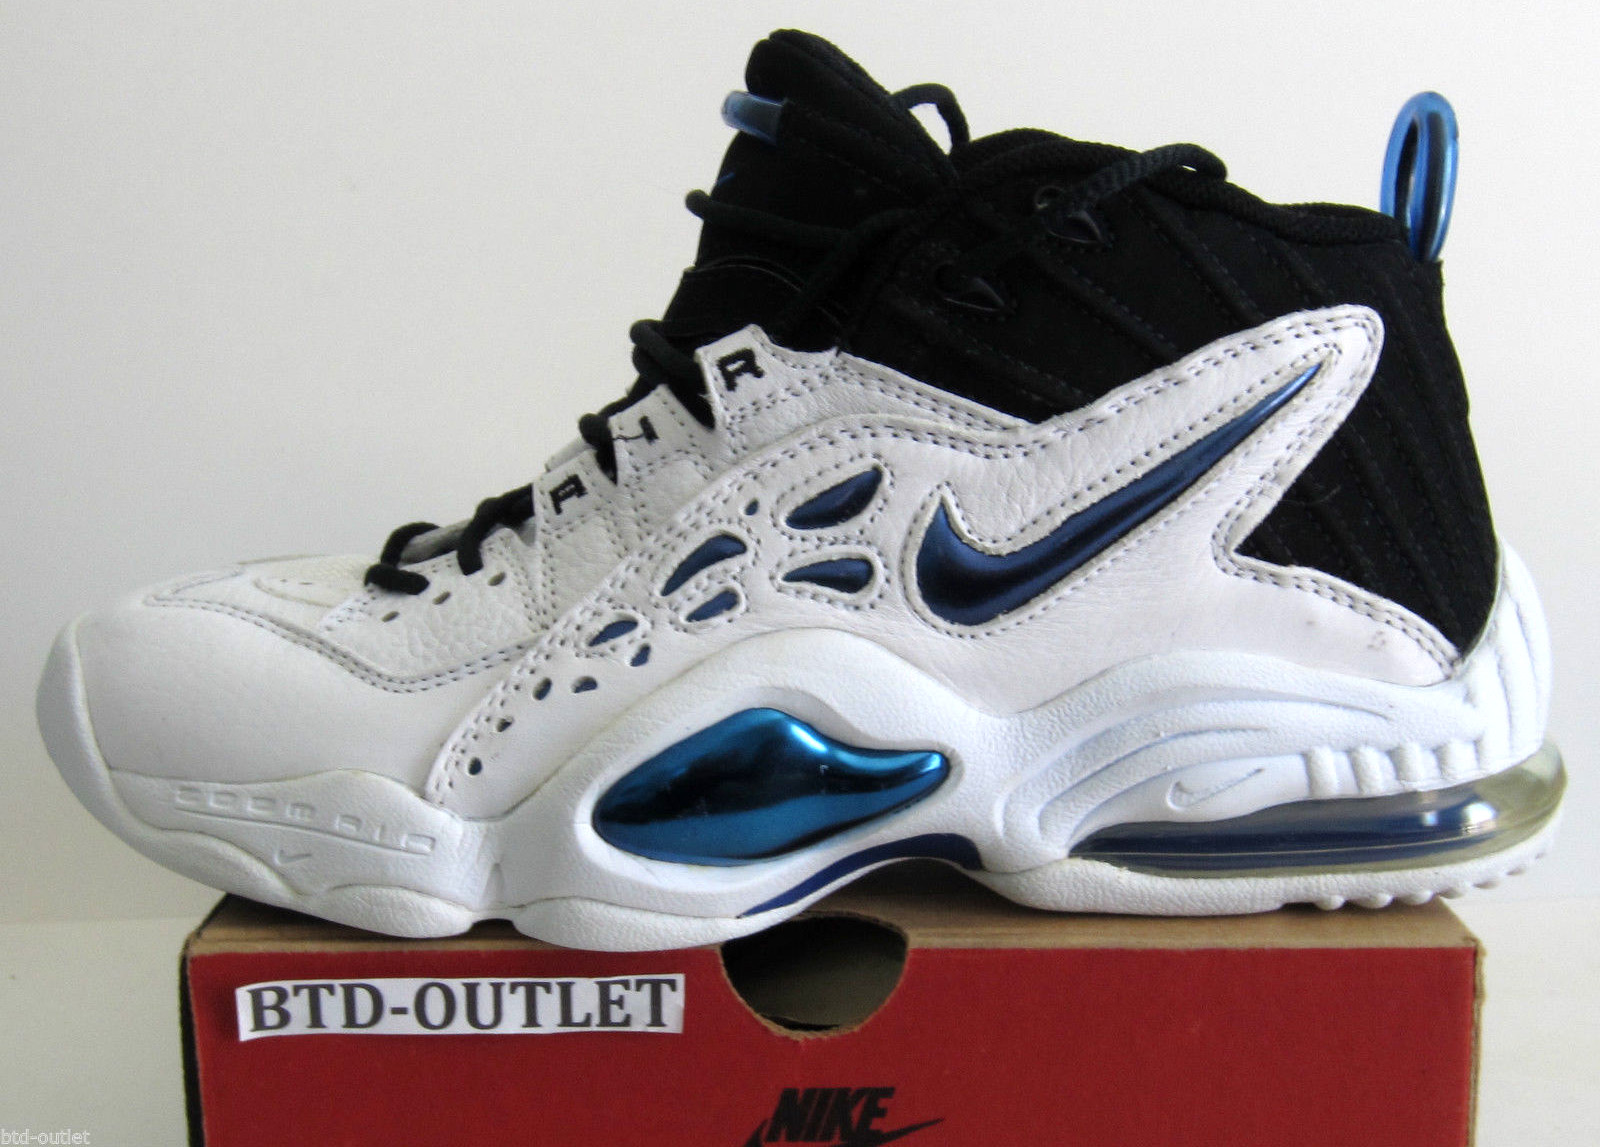 d0bffe190ae5 If you re a 9.5 (this seller also has sizes 8.5 and 9 up right now)